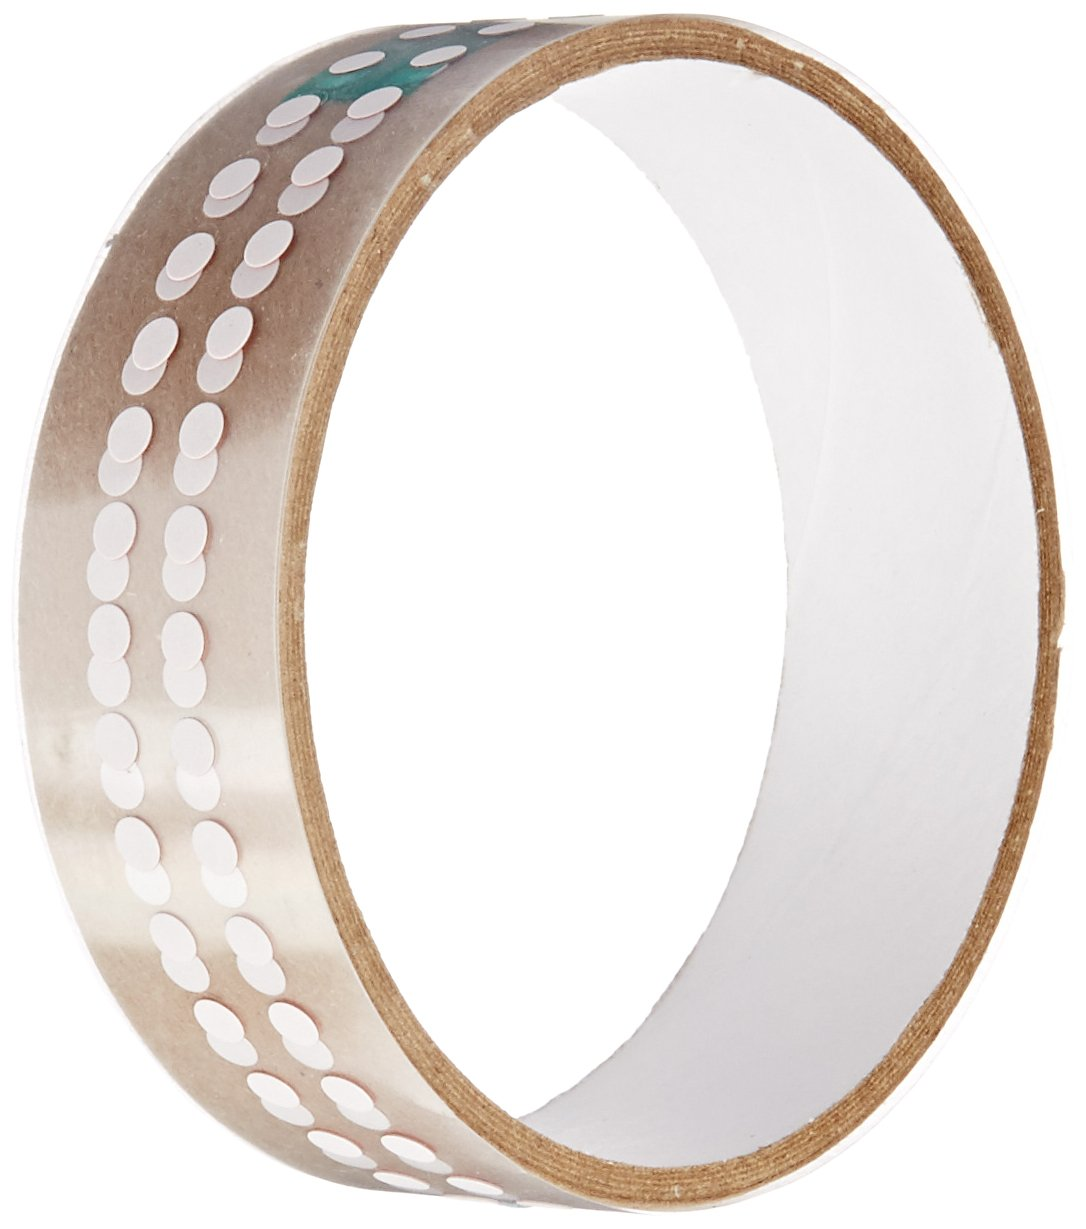 TapeCase 3M 5559 4MM-DISC-100 White Paper/Acrylic Adhesive Ultra Thin Water Contact Indicator Tape, 0.005'' Thickness, 0.157'' Length, 0.157'' Width (Pack of 100)